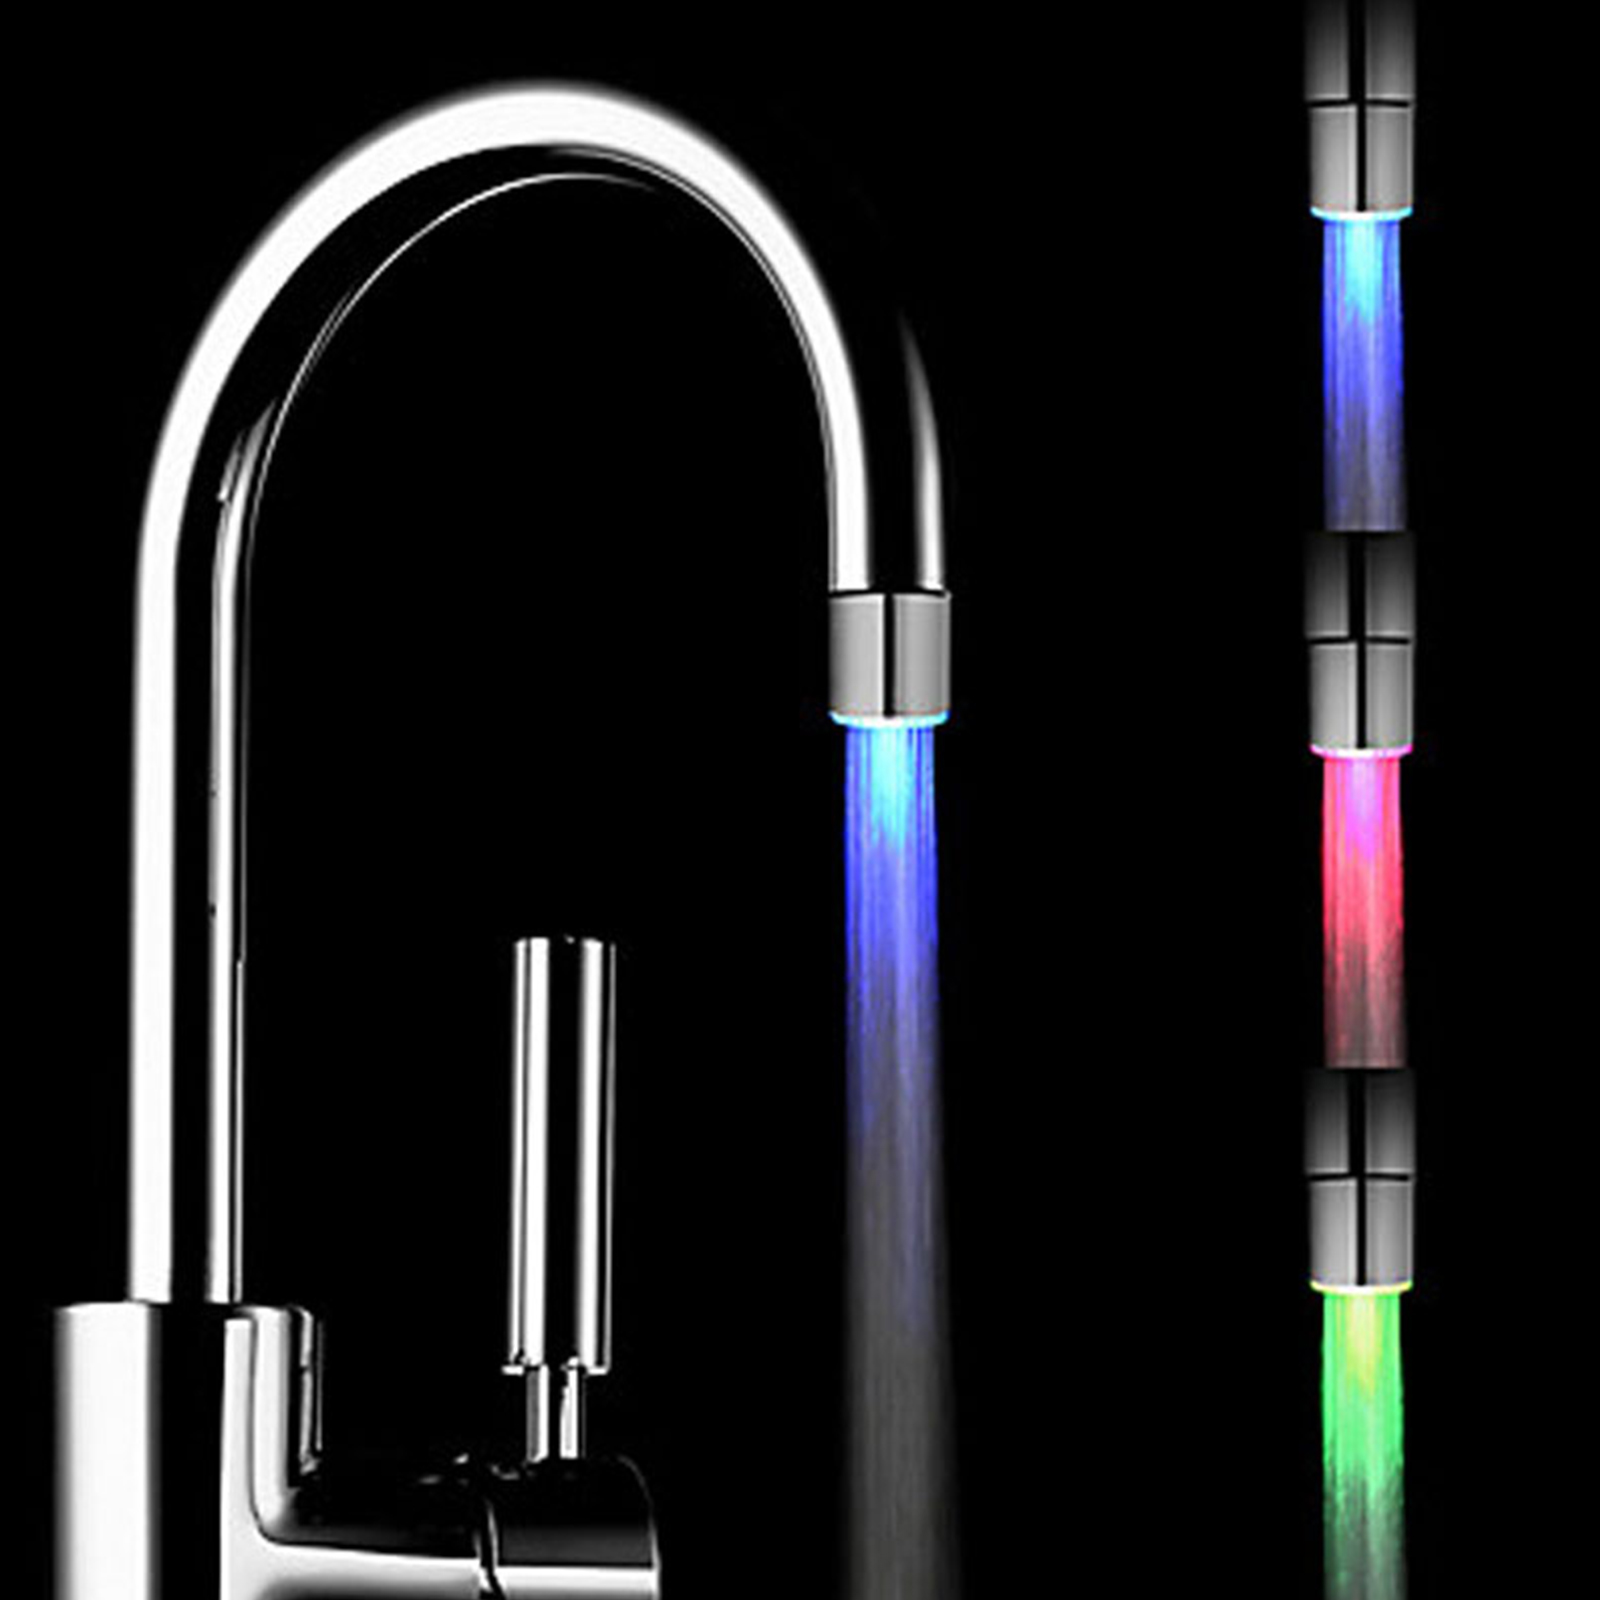 LED Faucet Light Tap Nozzle Blue Green Red Color Blinking Temperature Faucet Aerator Water Saving Kitchen Bathroom Accessories